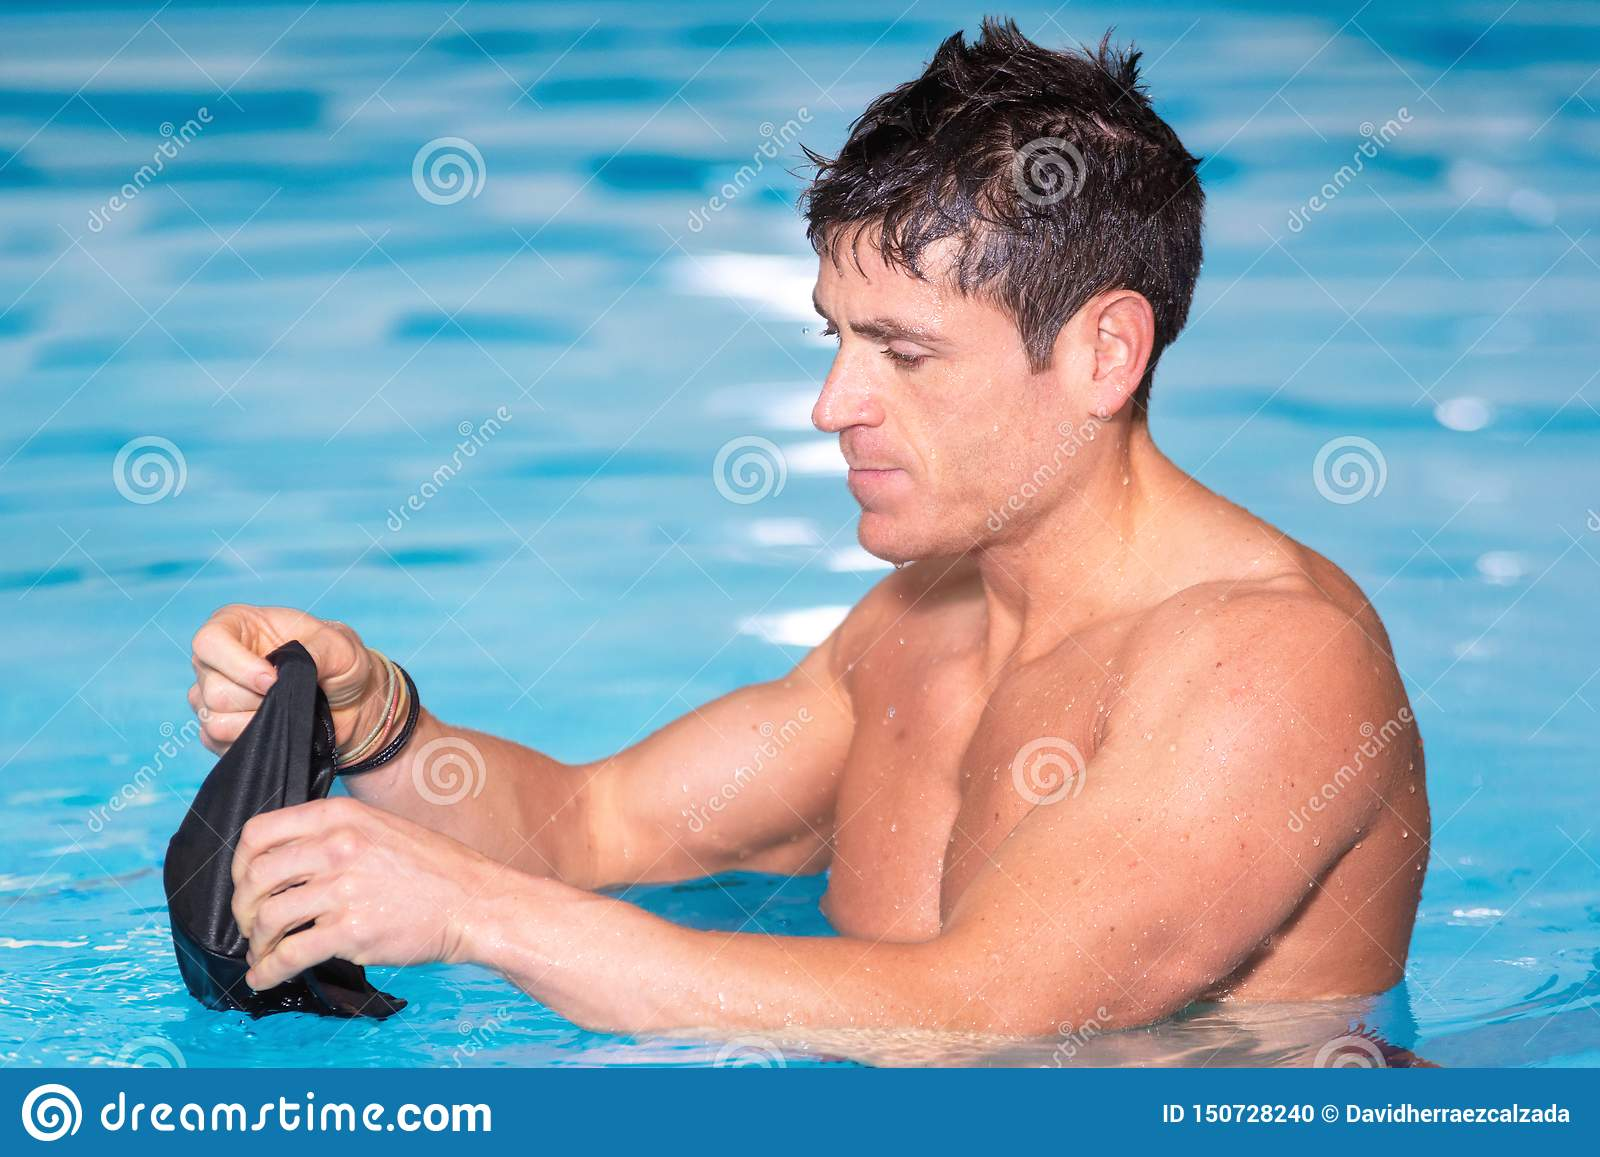 Young muscular swimmer preparing to swim, putting his cap on.